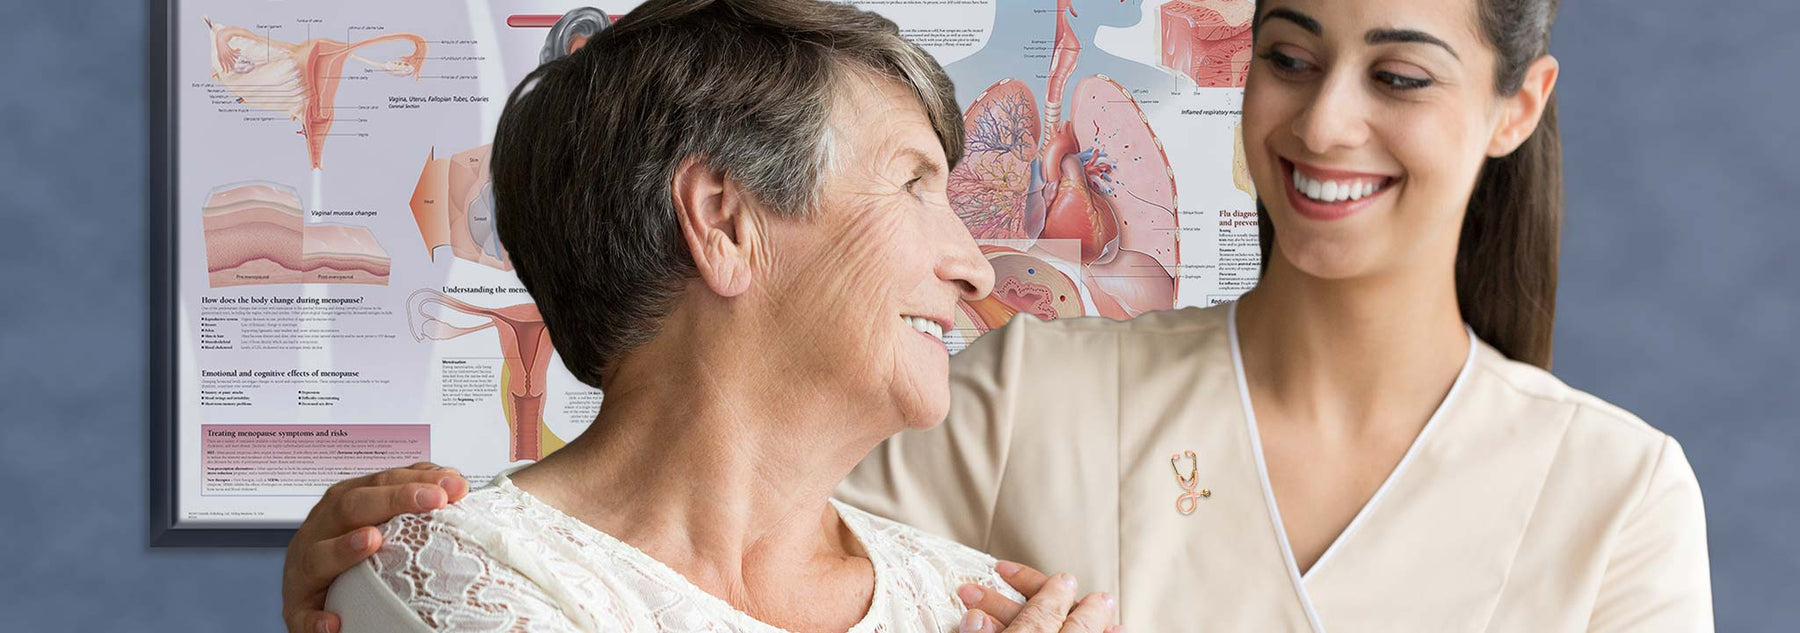 Female nurse with elderly patient and framed anatomy posters